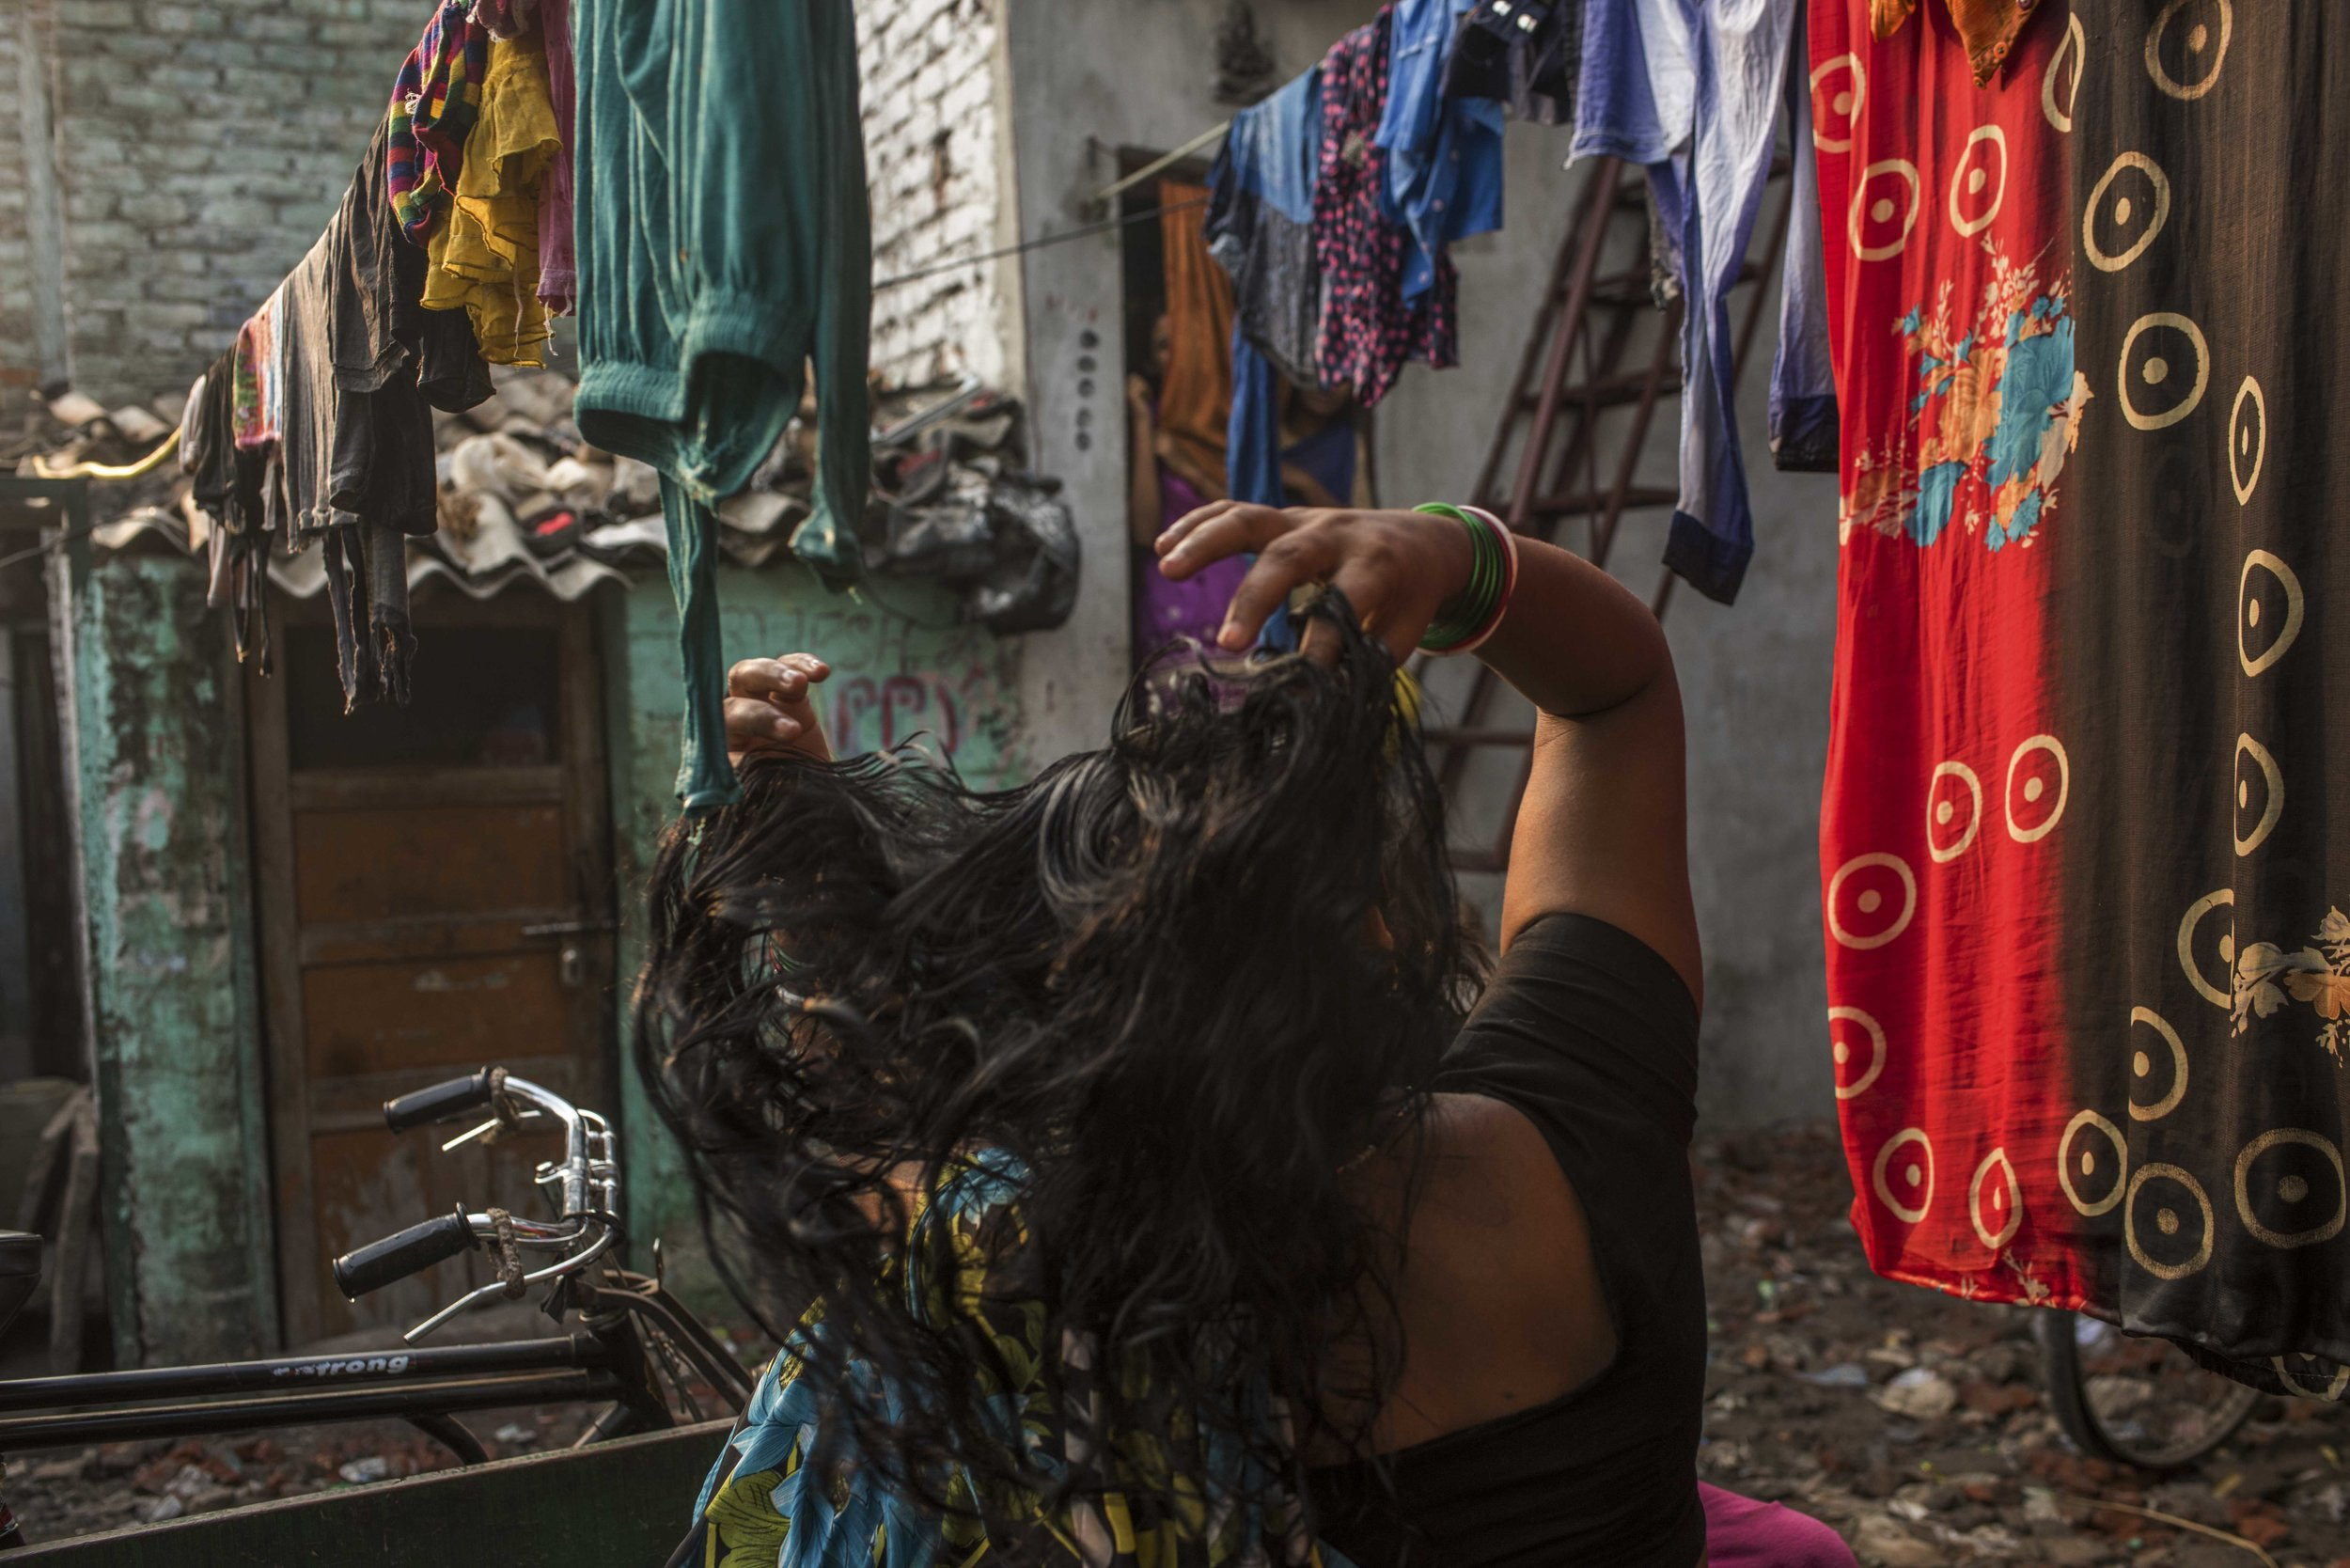 India, New Delhi, October 2016, A young woman dries her hair.